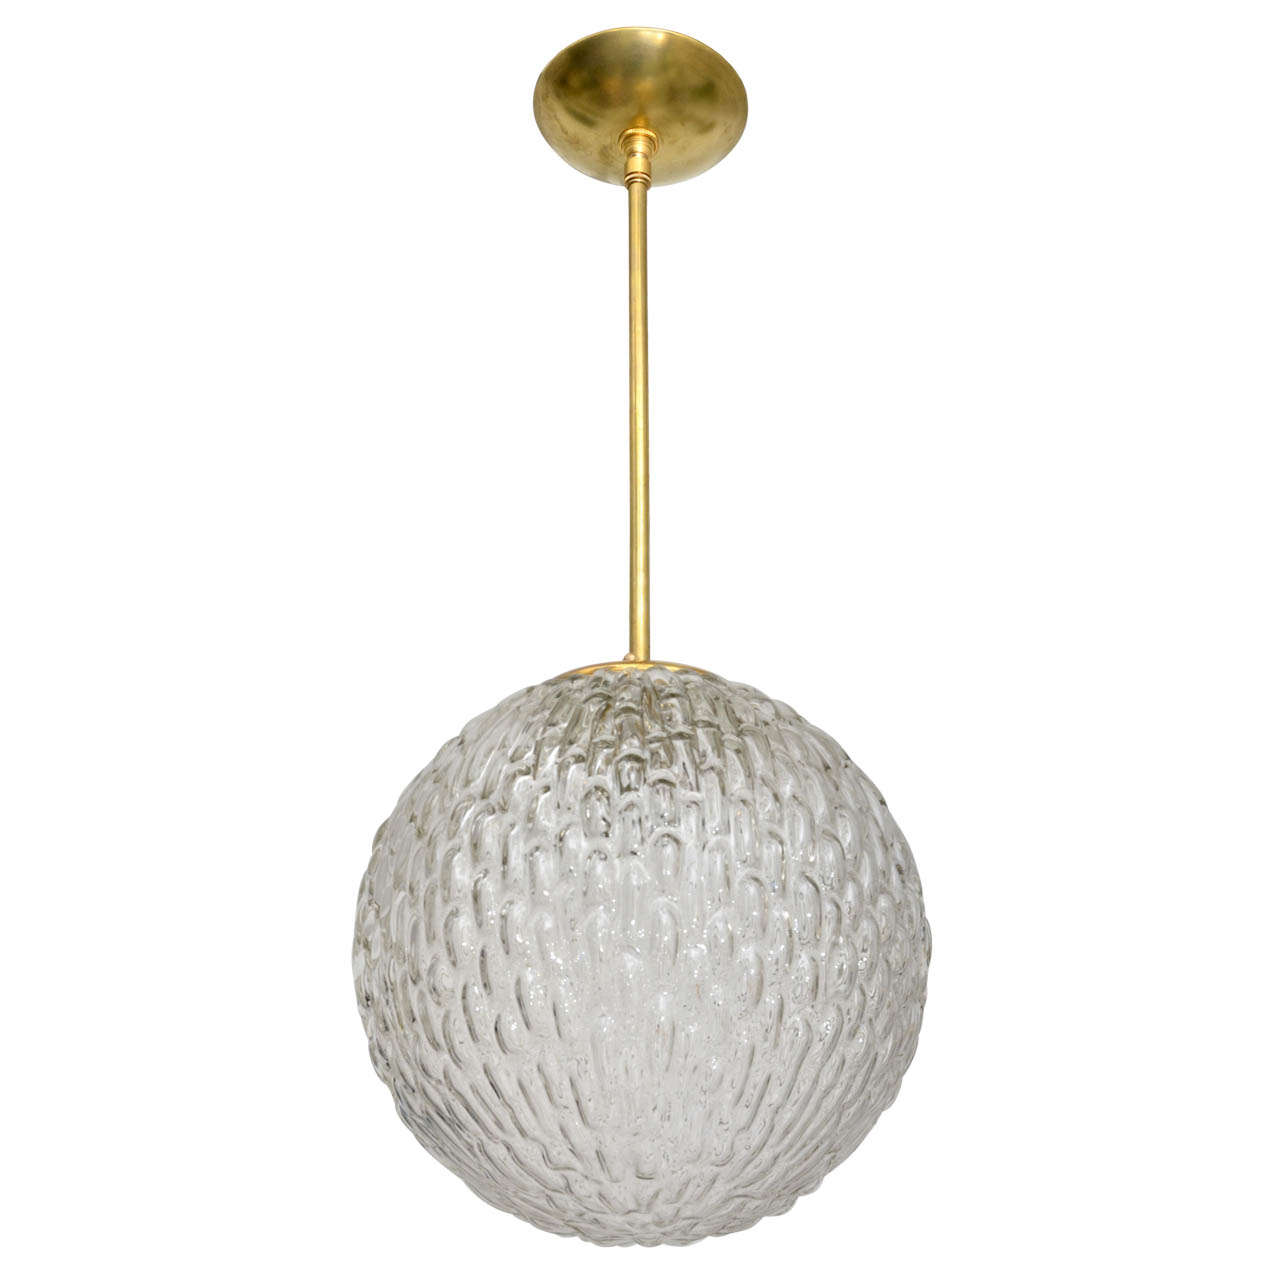 Textured Murano Gl Globe Pendant With Br Details At 1stdibs